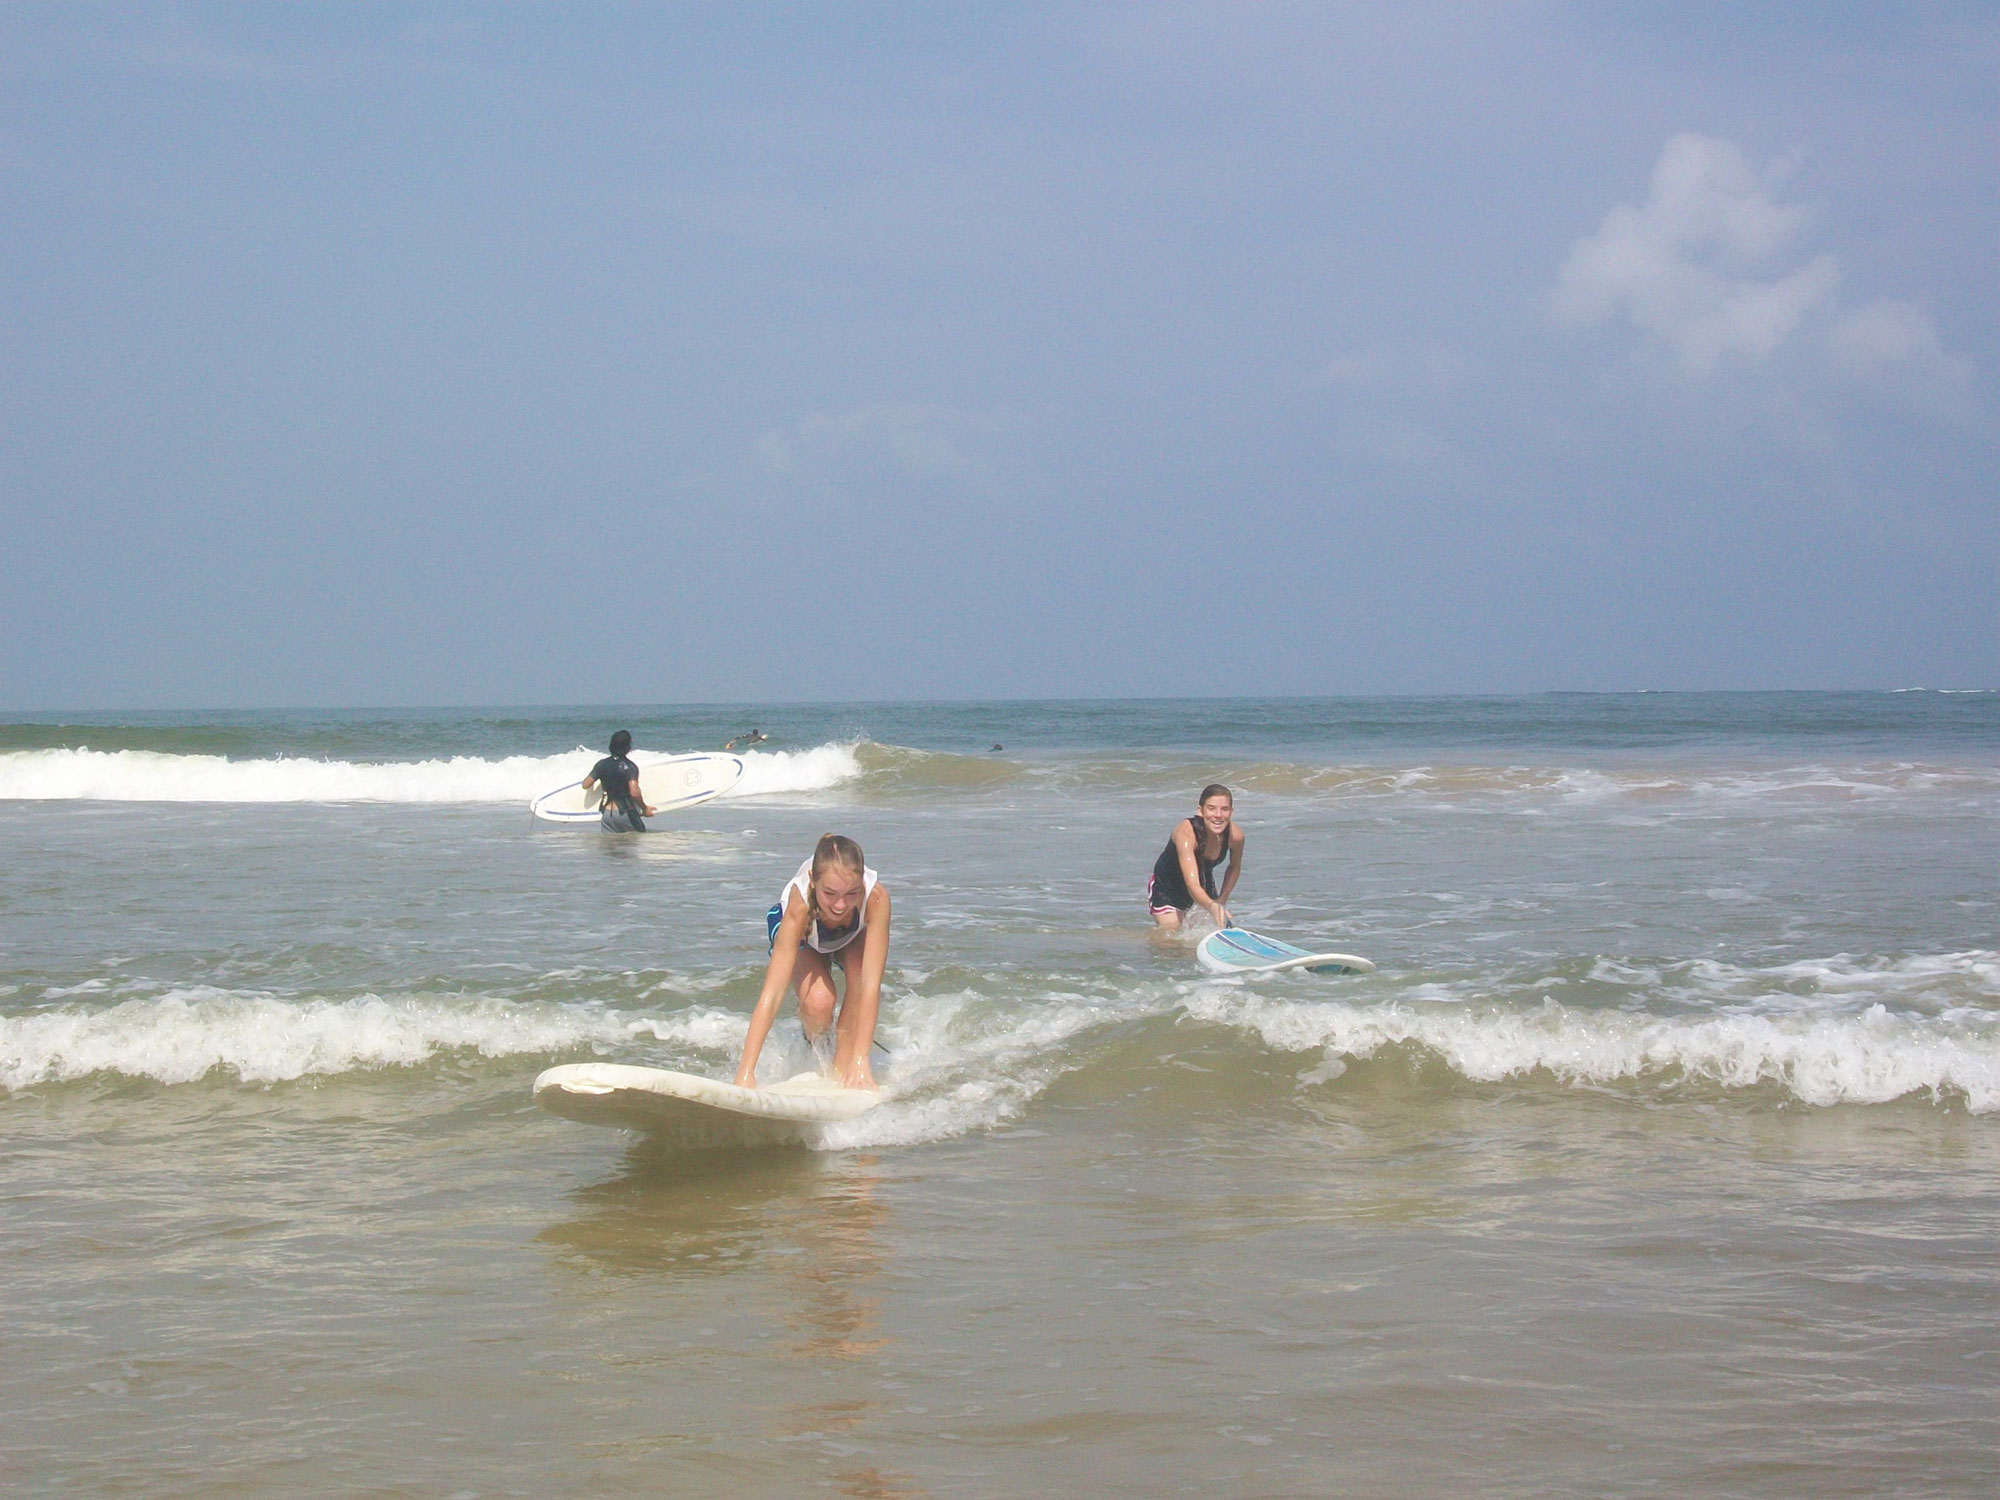 Spend an afternoon at Busua Beach learning how to surf with local guides.